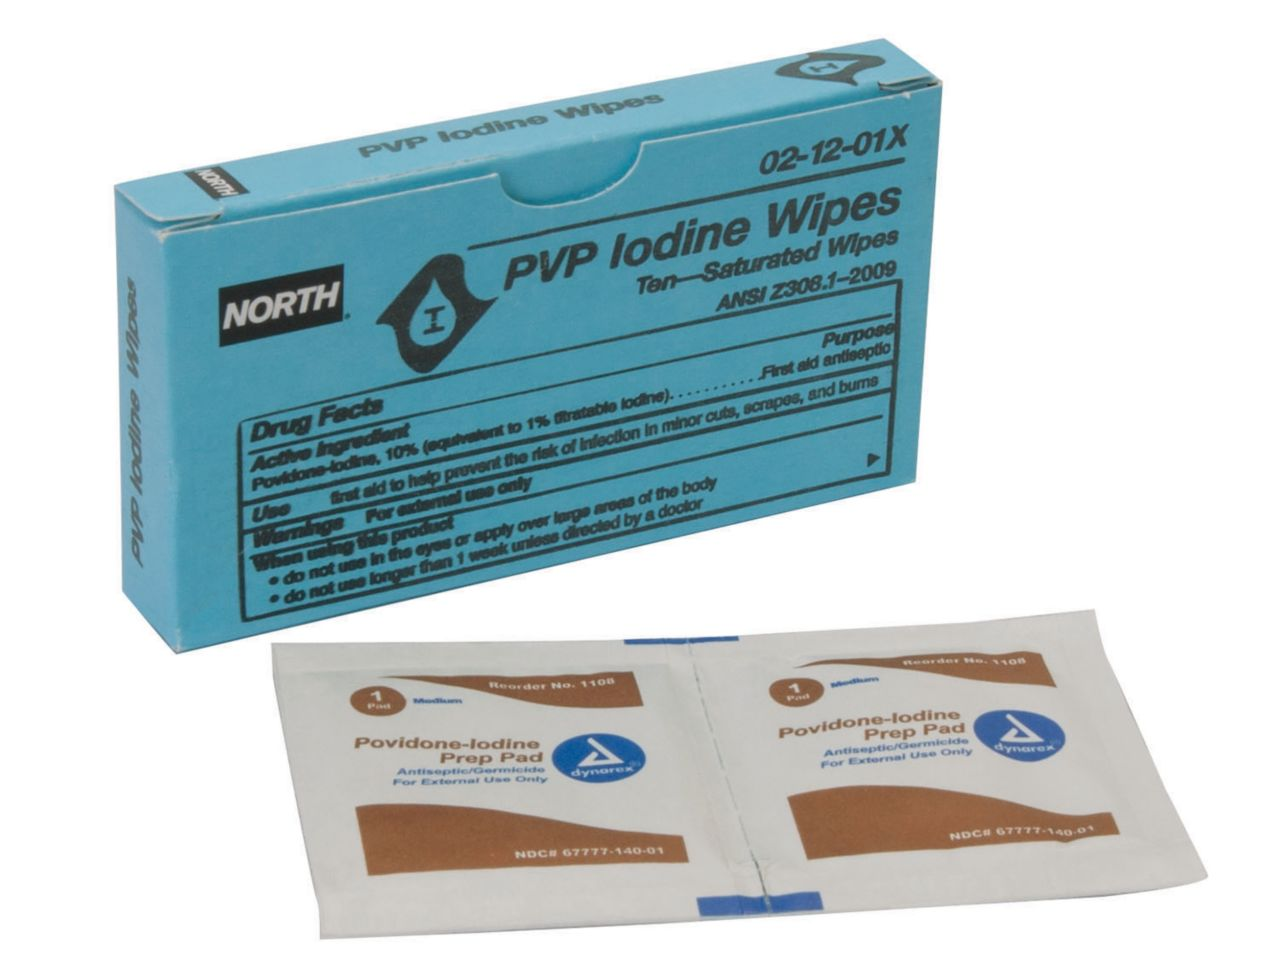 North PVP iodine wipes 021201X